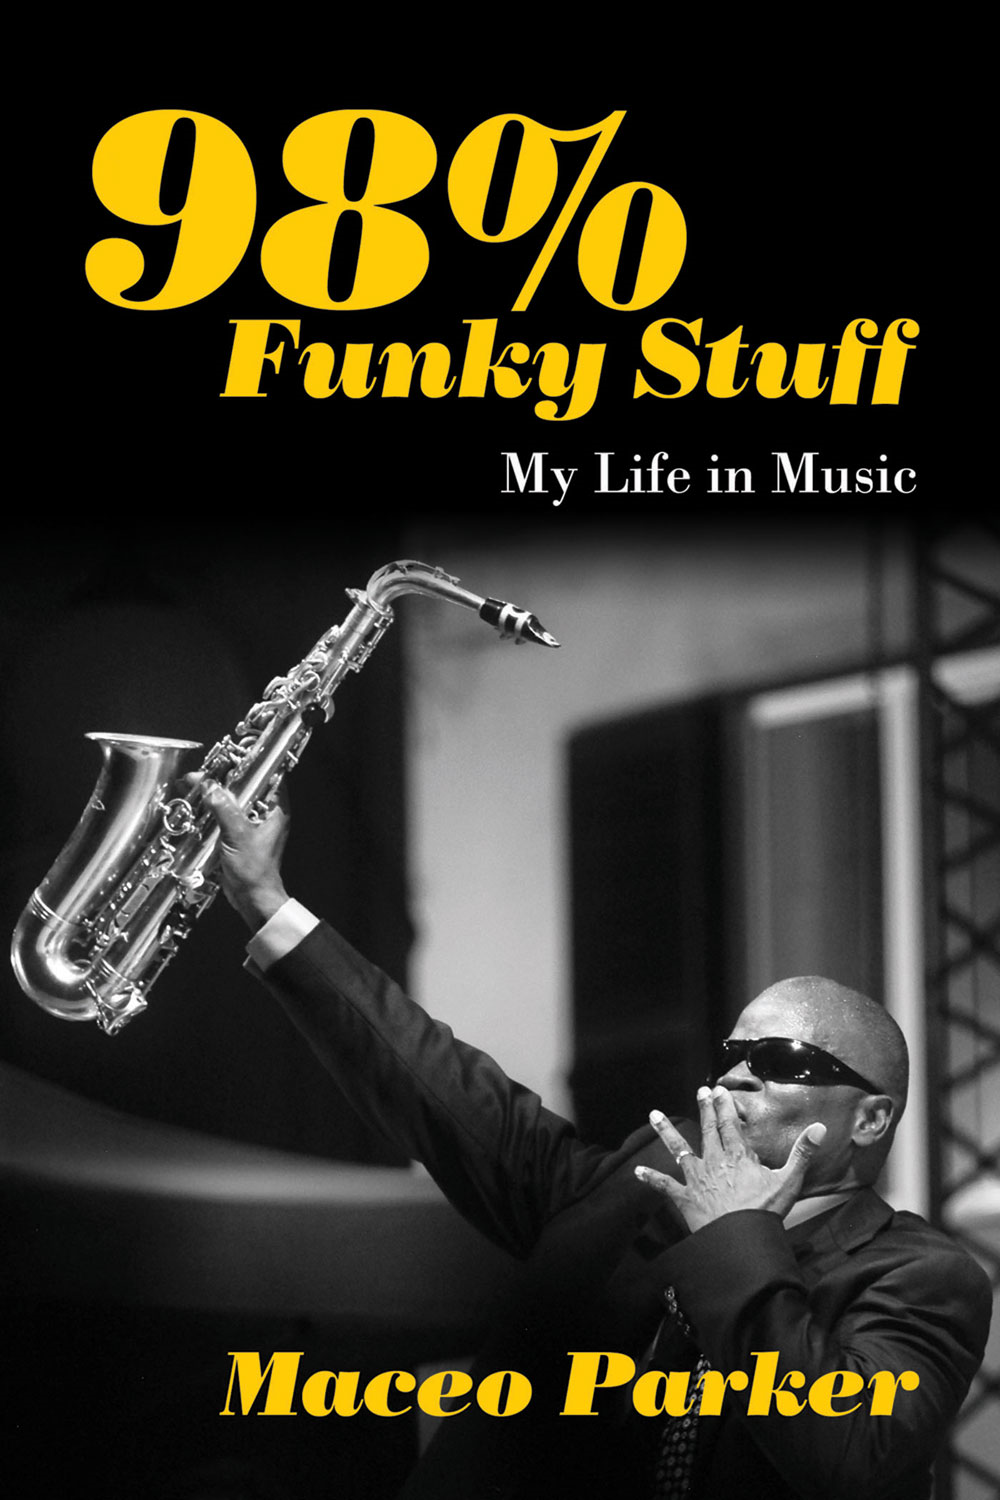 98% Funky Stuff By: Maceo Parker